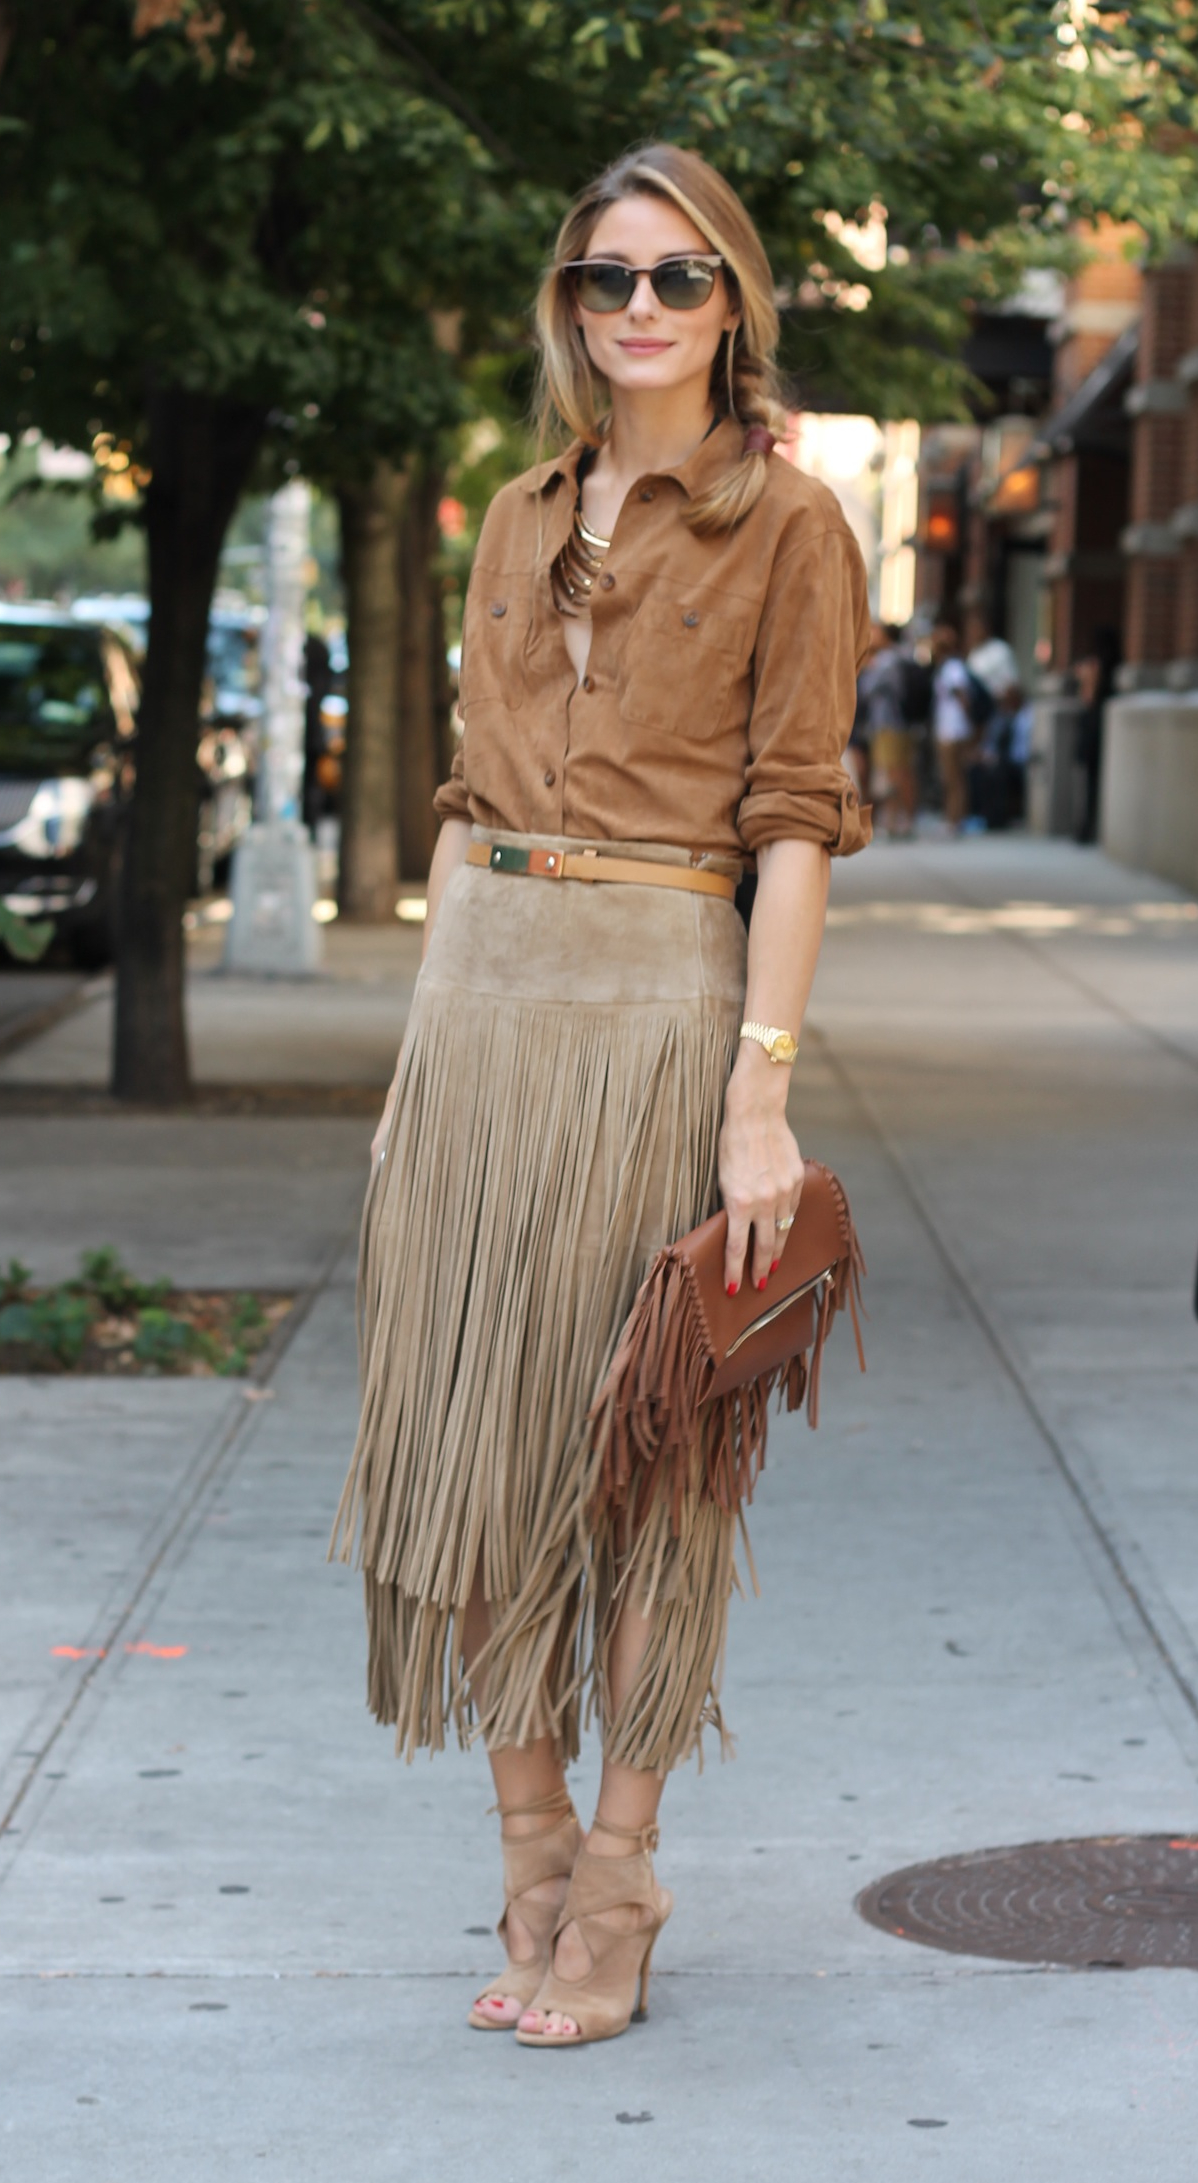 Olivia Palermo is wearing a suede fringe skirt from Michael Kors, suede blouse from Gerard Darel, bag from Carolina Herrera and the shoes are from Aquazzura